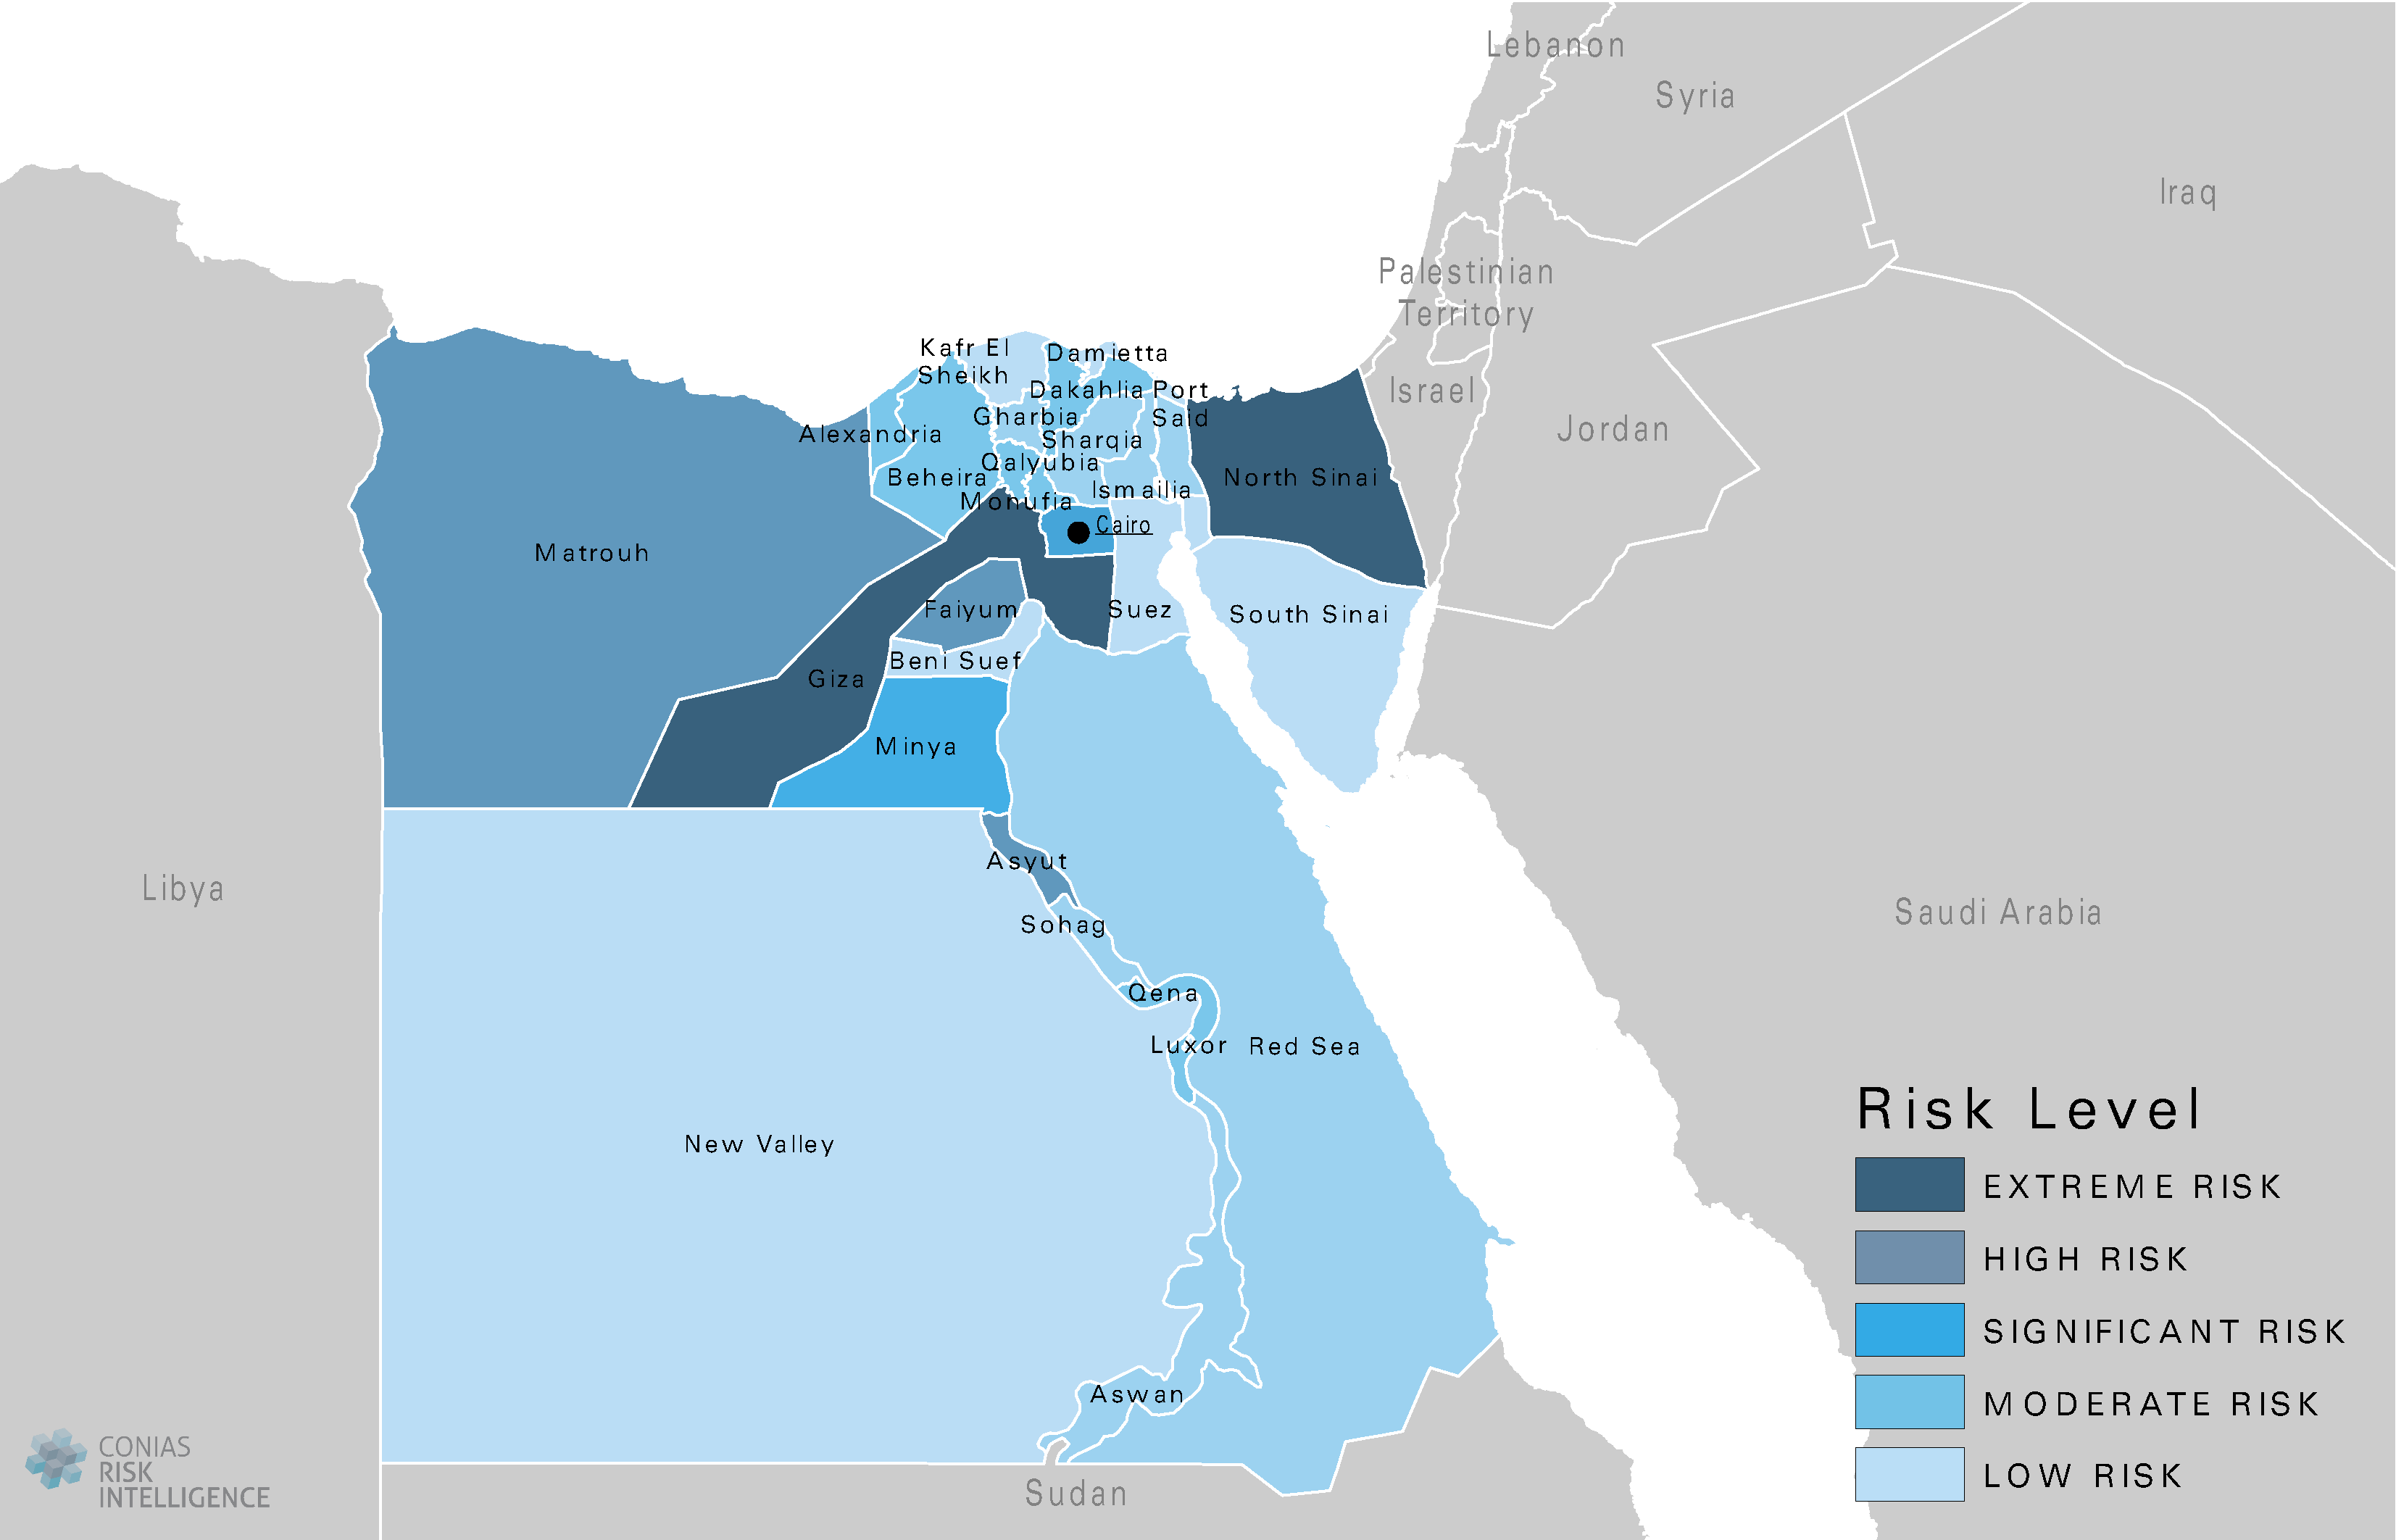 CONIAS Political Risk Maps Ägypten